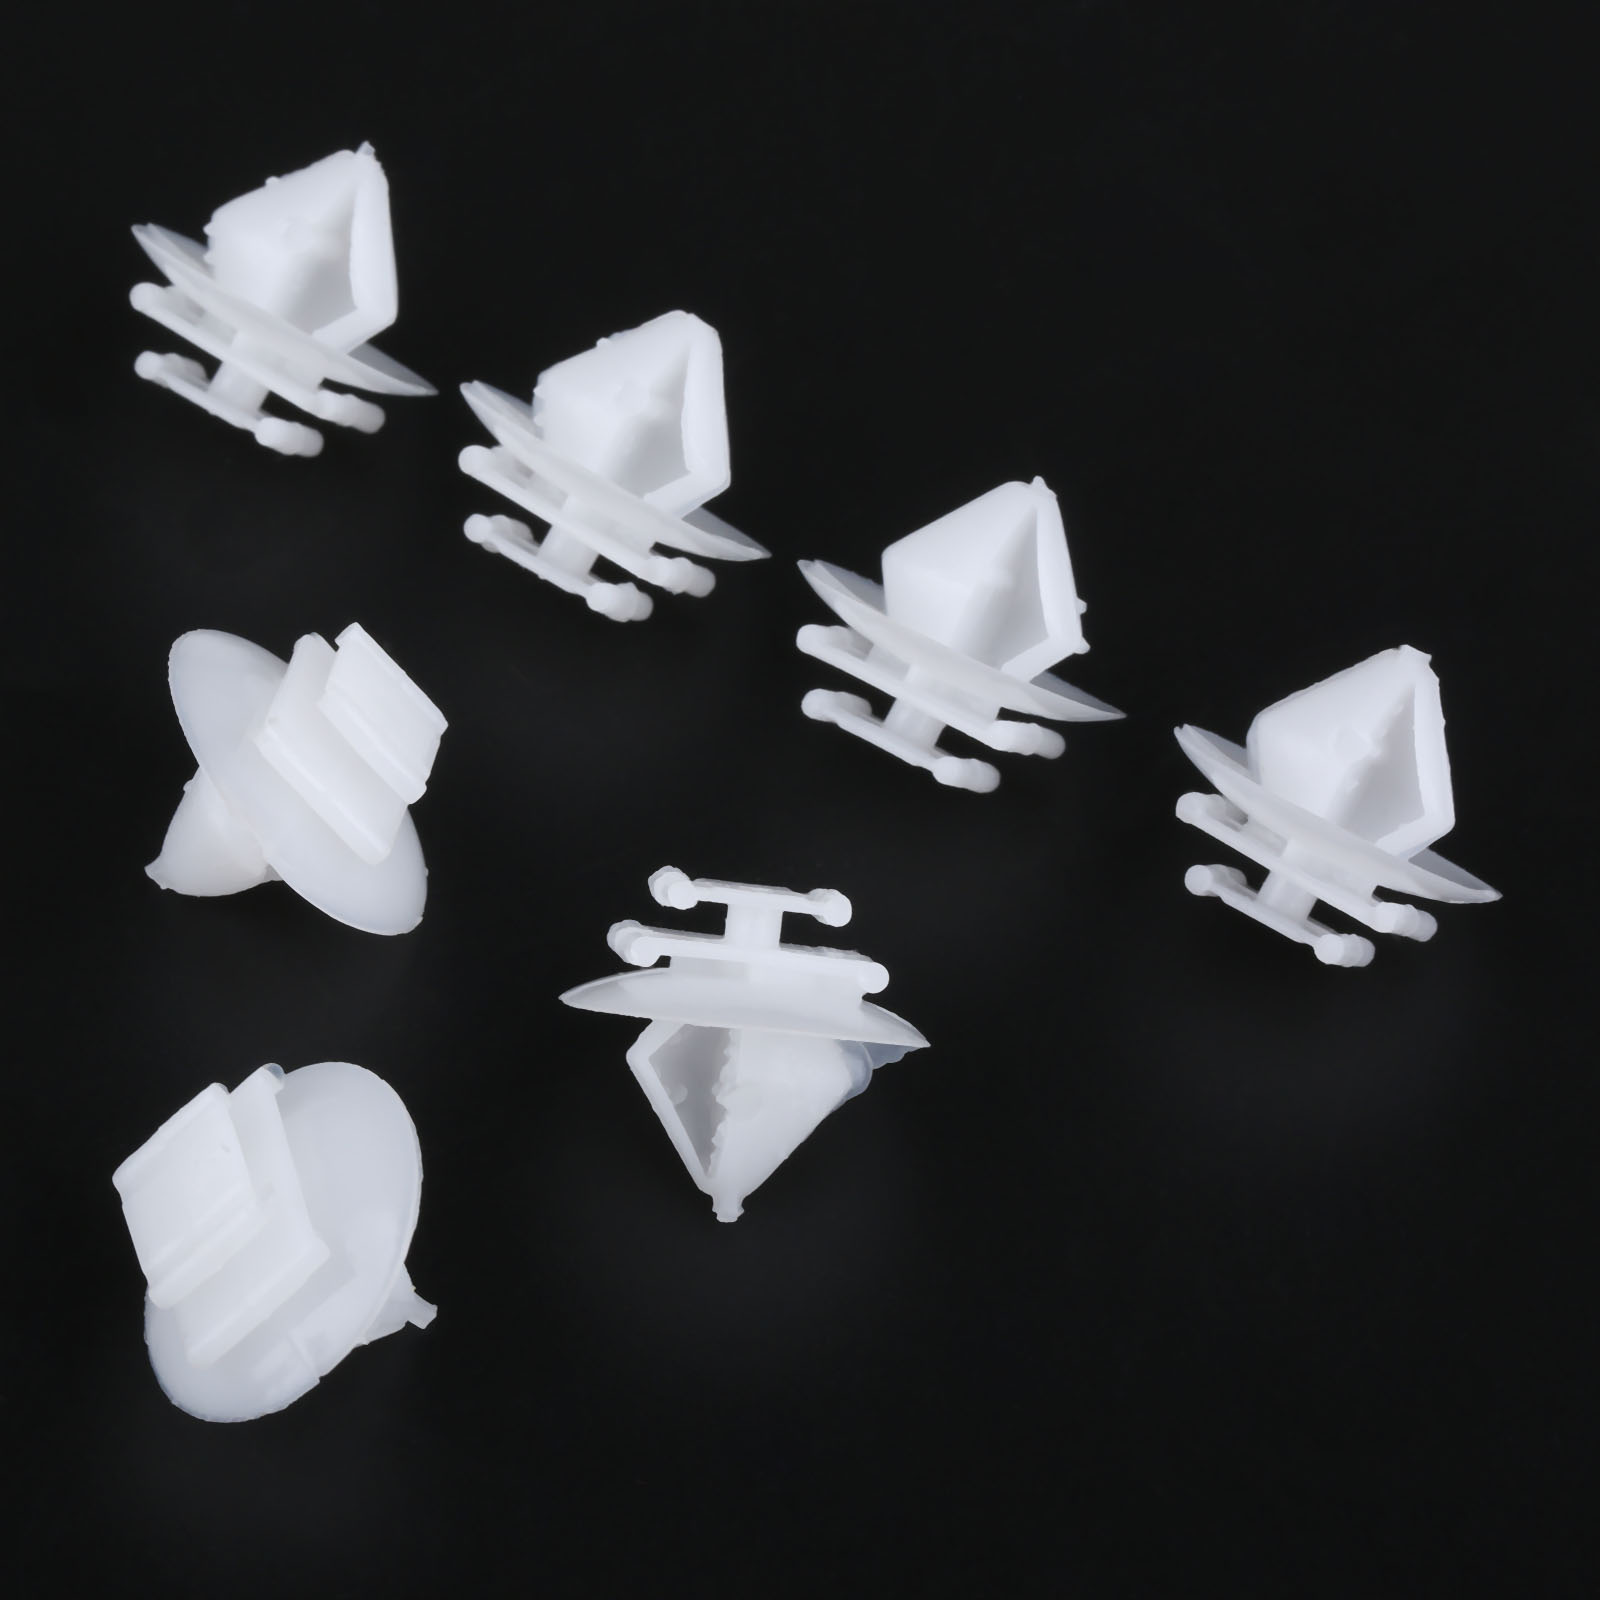 50Pcs D-150 Door Trim Clips Panel Mounting Holder New Elysee Auto Interior Fastener Clip Fit For Citroen Peugeot 206